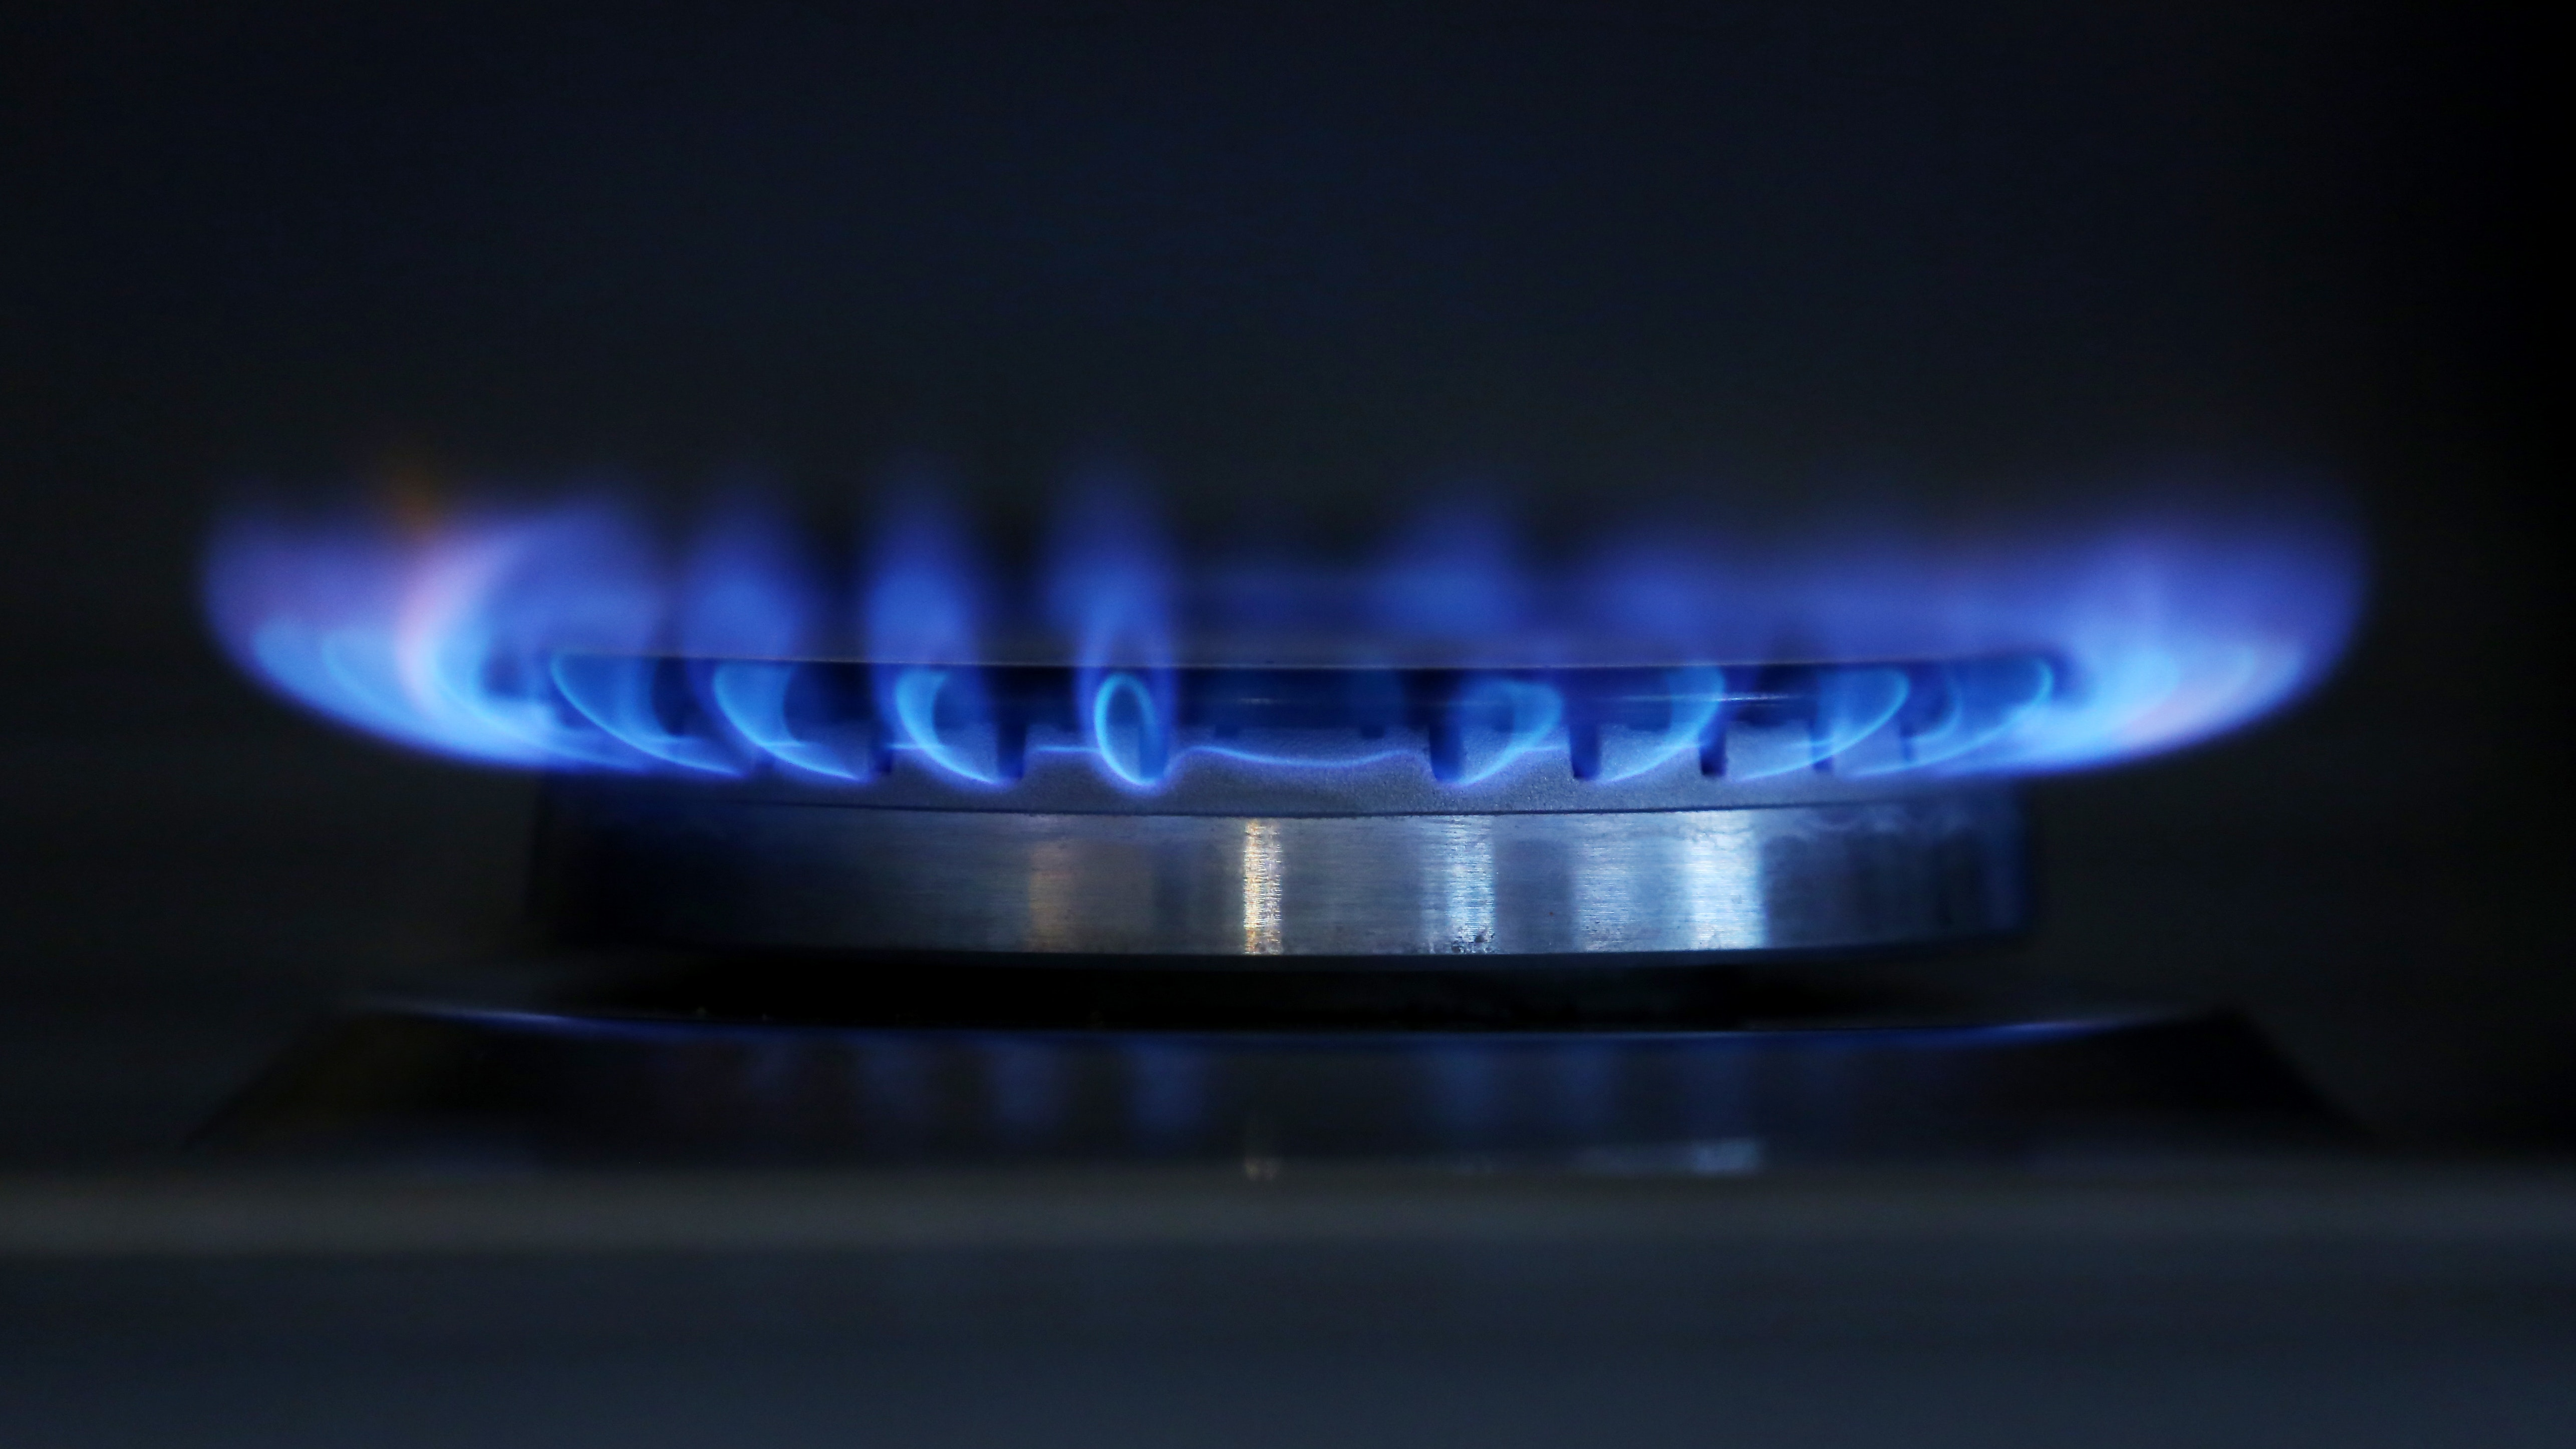 SSE loses 40000 customers and continues npower talks